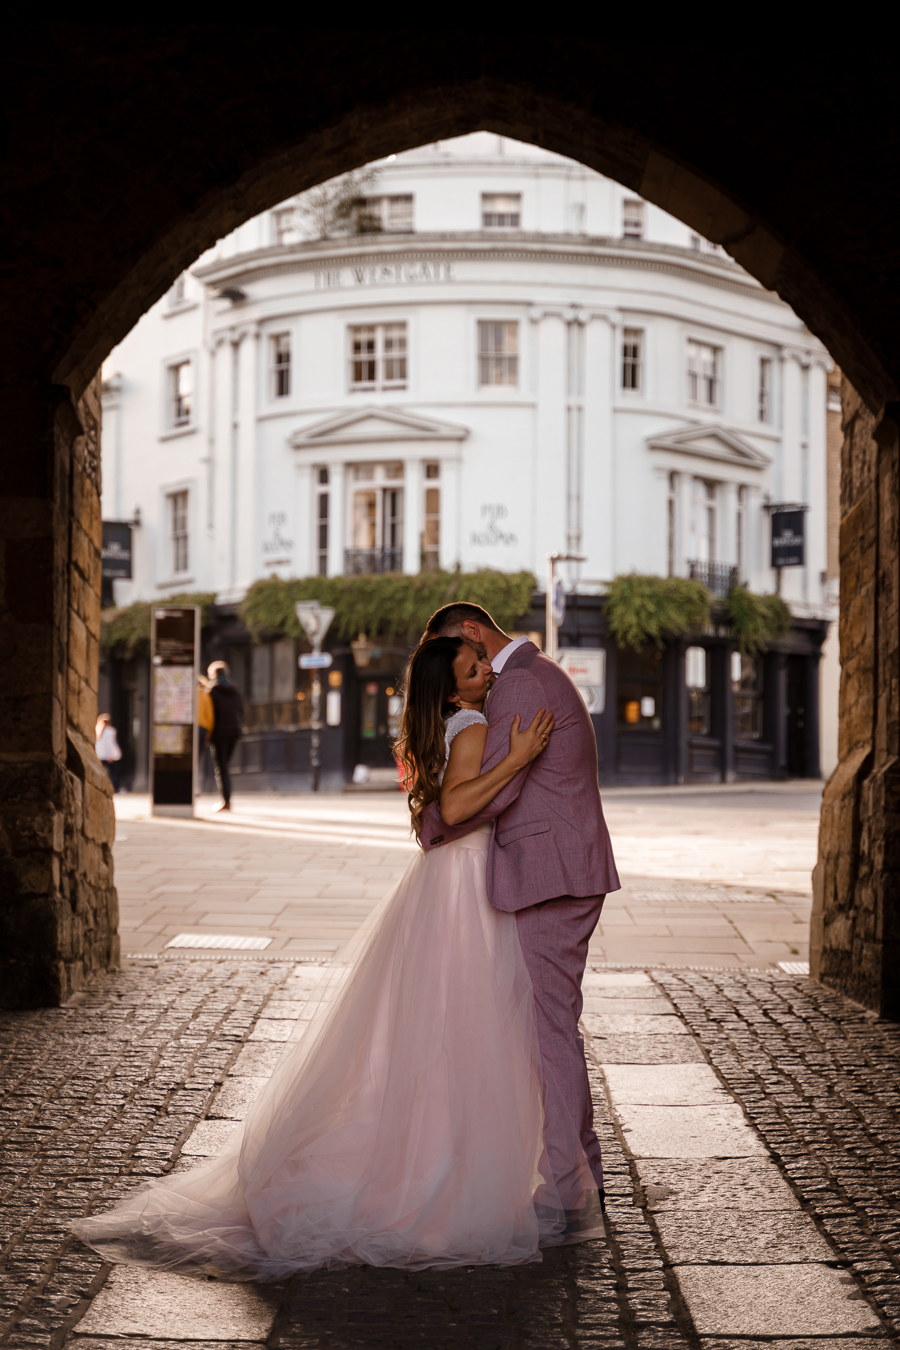 A loved-up Winchester city elopement - with adorable dogs! Photographer credit Katherine and her Camera (49)